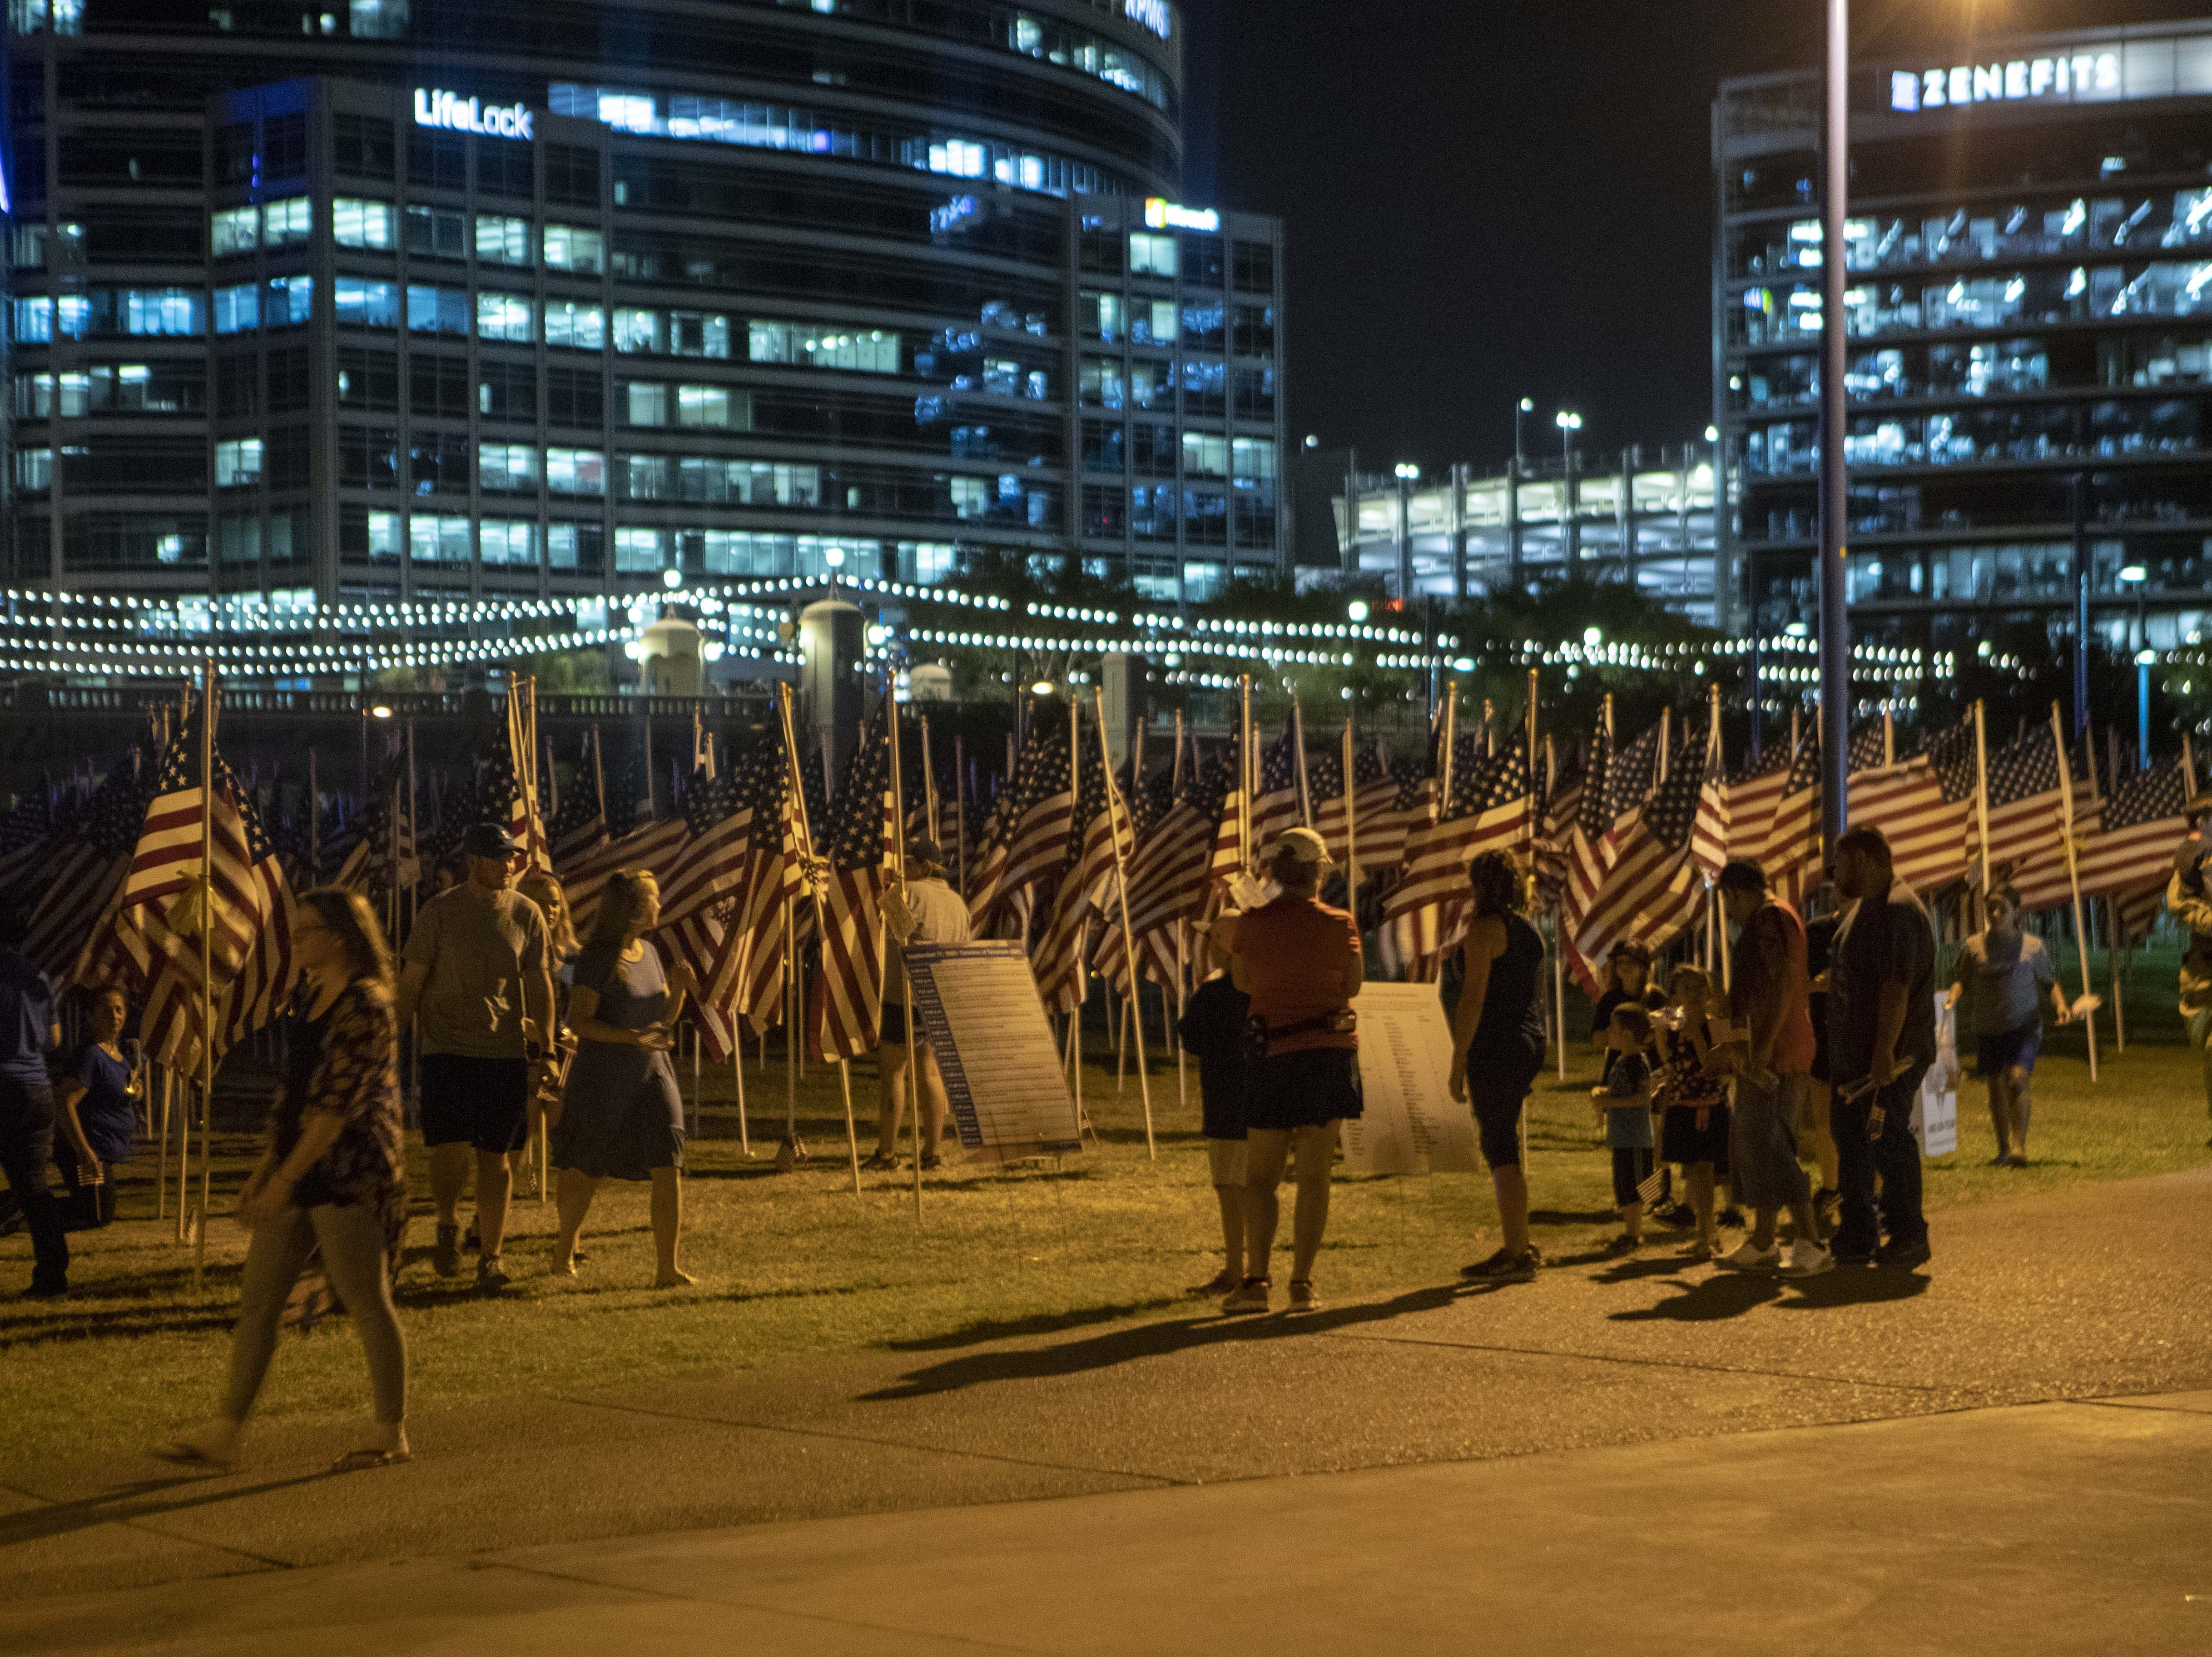 People came to participate during the ceremony at The Healing Field, at Tempe Beach Park on Sept. 11, 2018. This is an annual memorial to commemorate Sept. 11, 2001, terrorist attacks on U.S. soil.